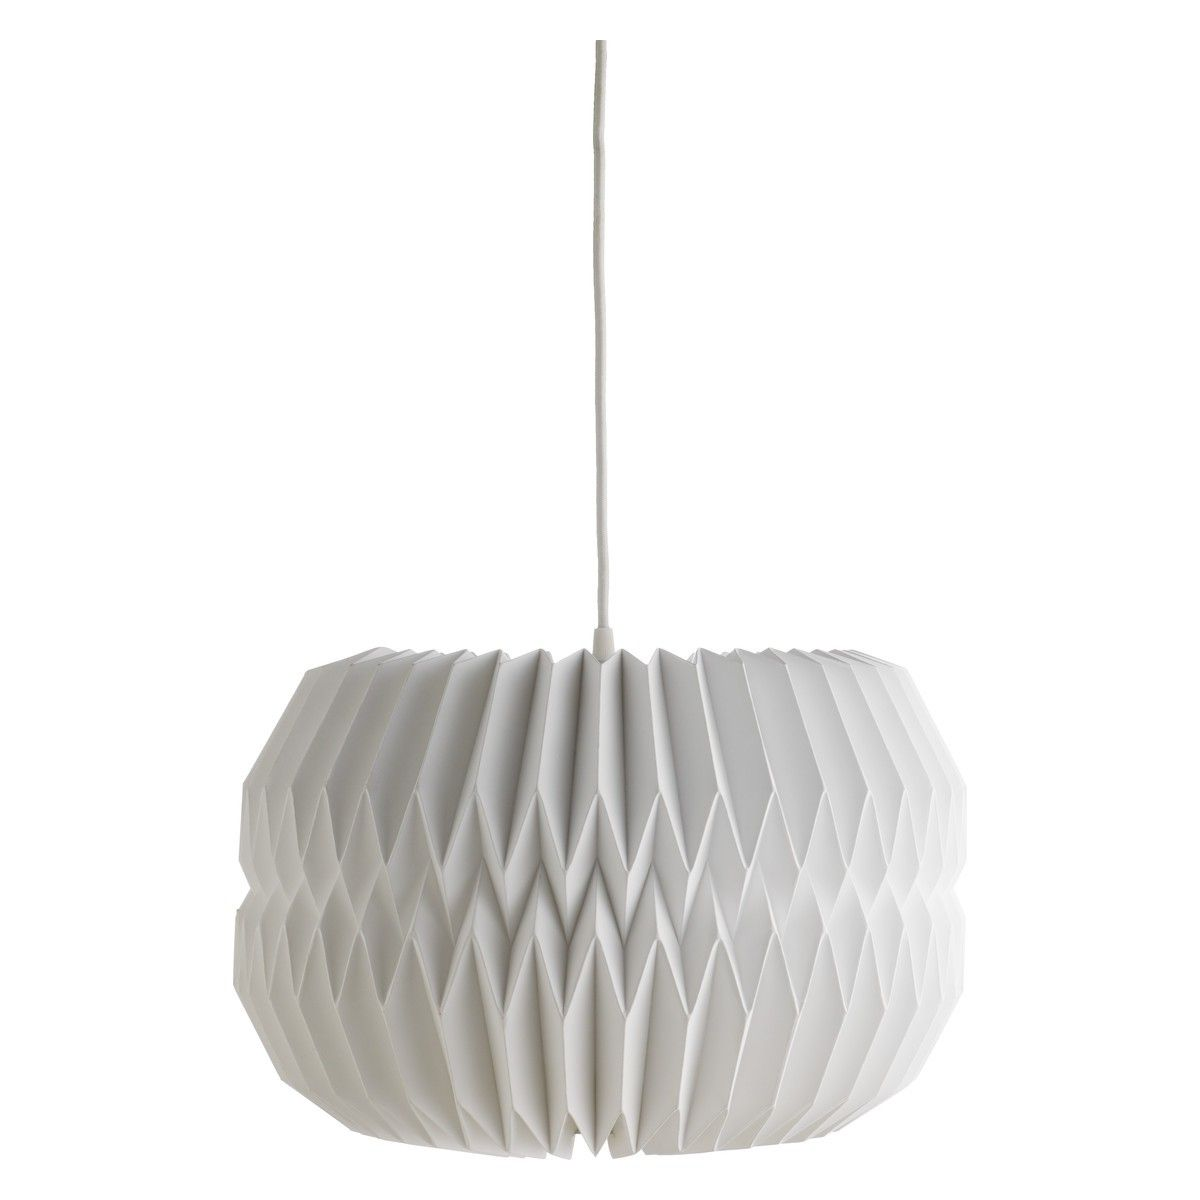 KURA Large white lampshade | Paper lamps, Large white and Bedrooms